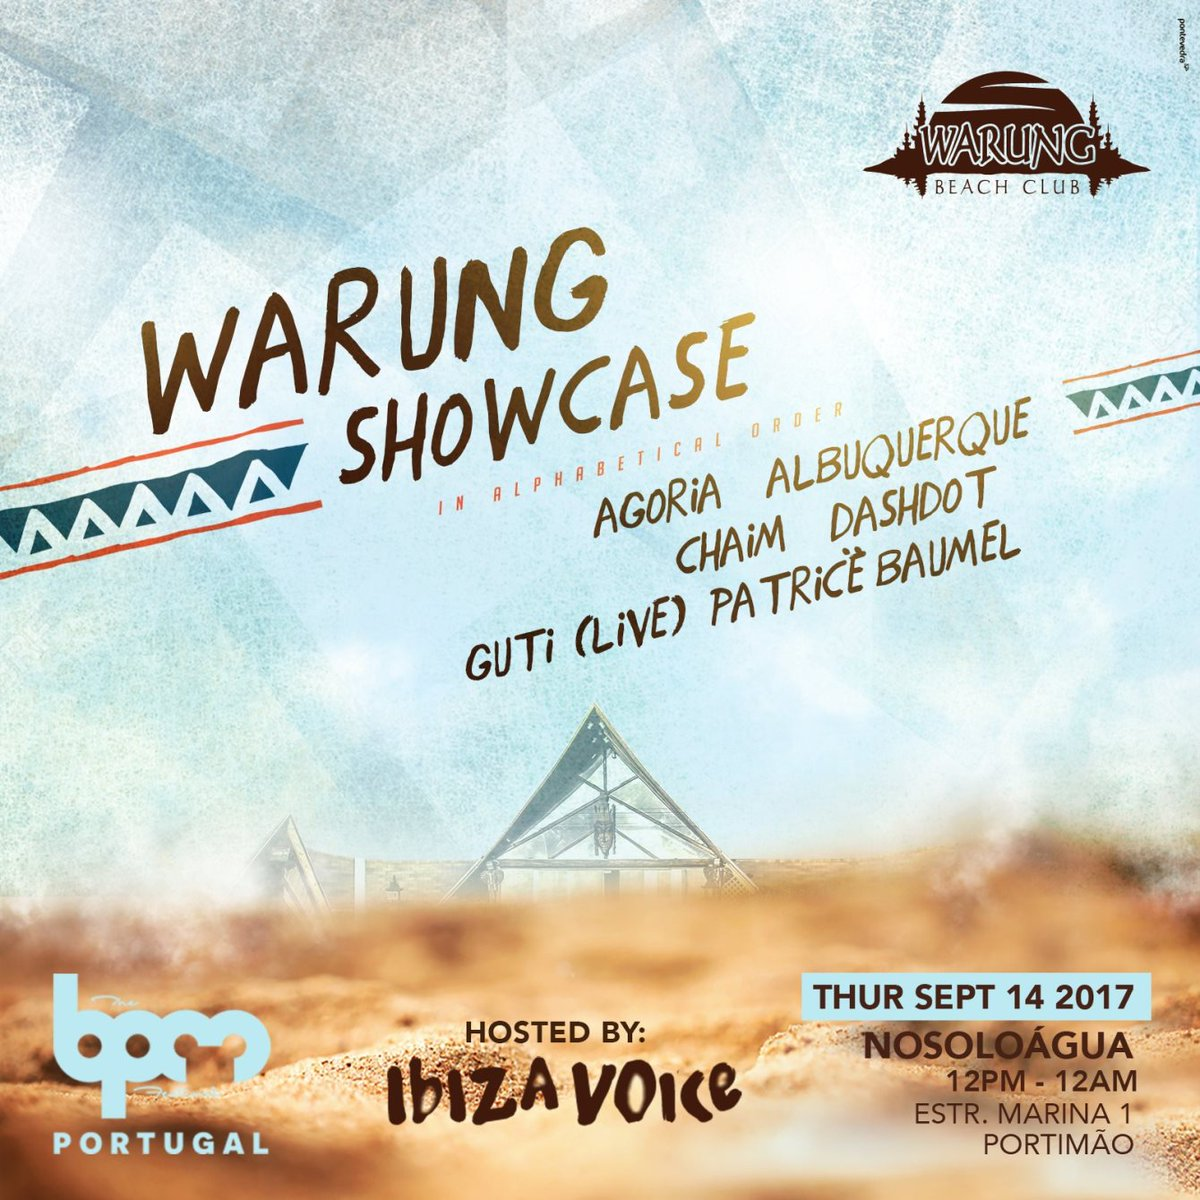 download → Patrice Baumel, Guti, Dashdo, Albuquerque - live at Warung (BPM Portugal 2017) - 14-Sep-2017